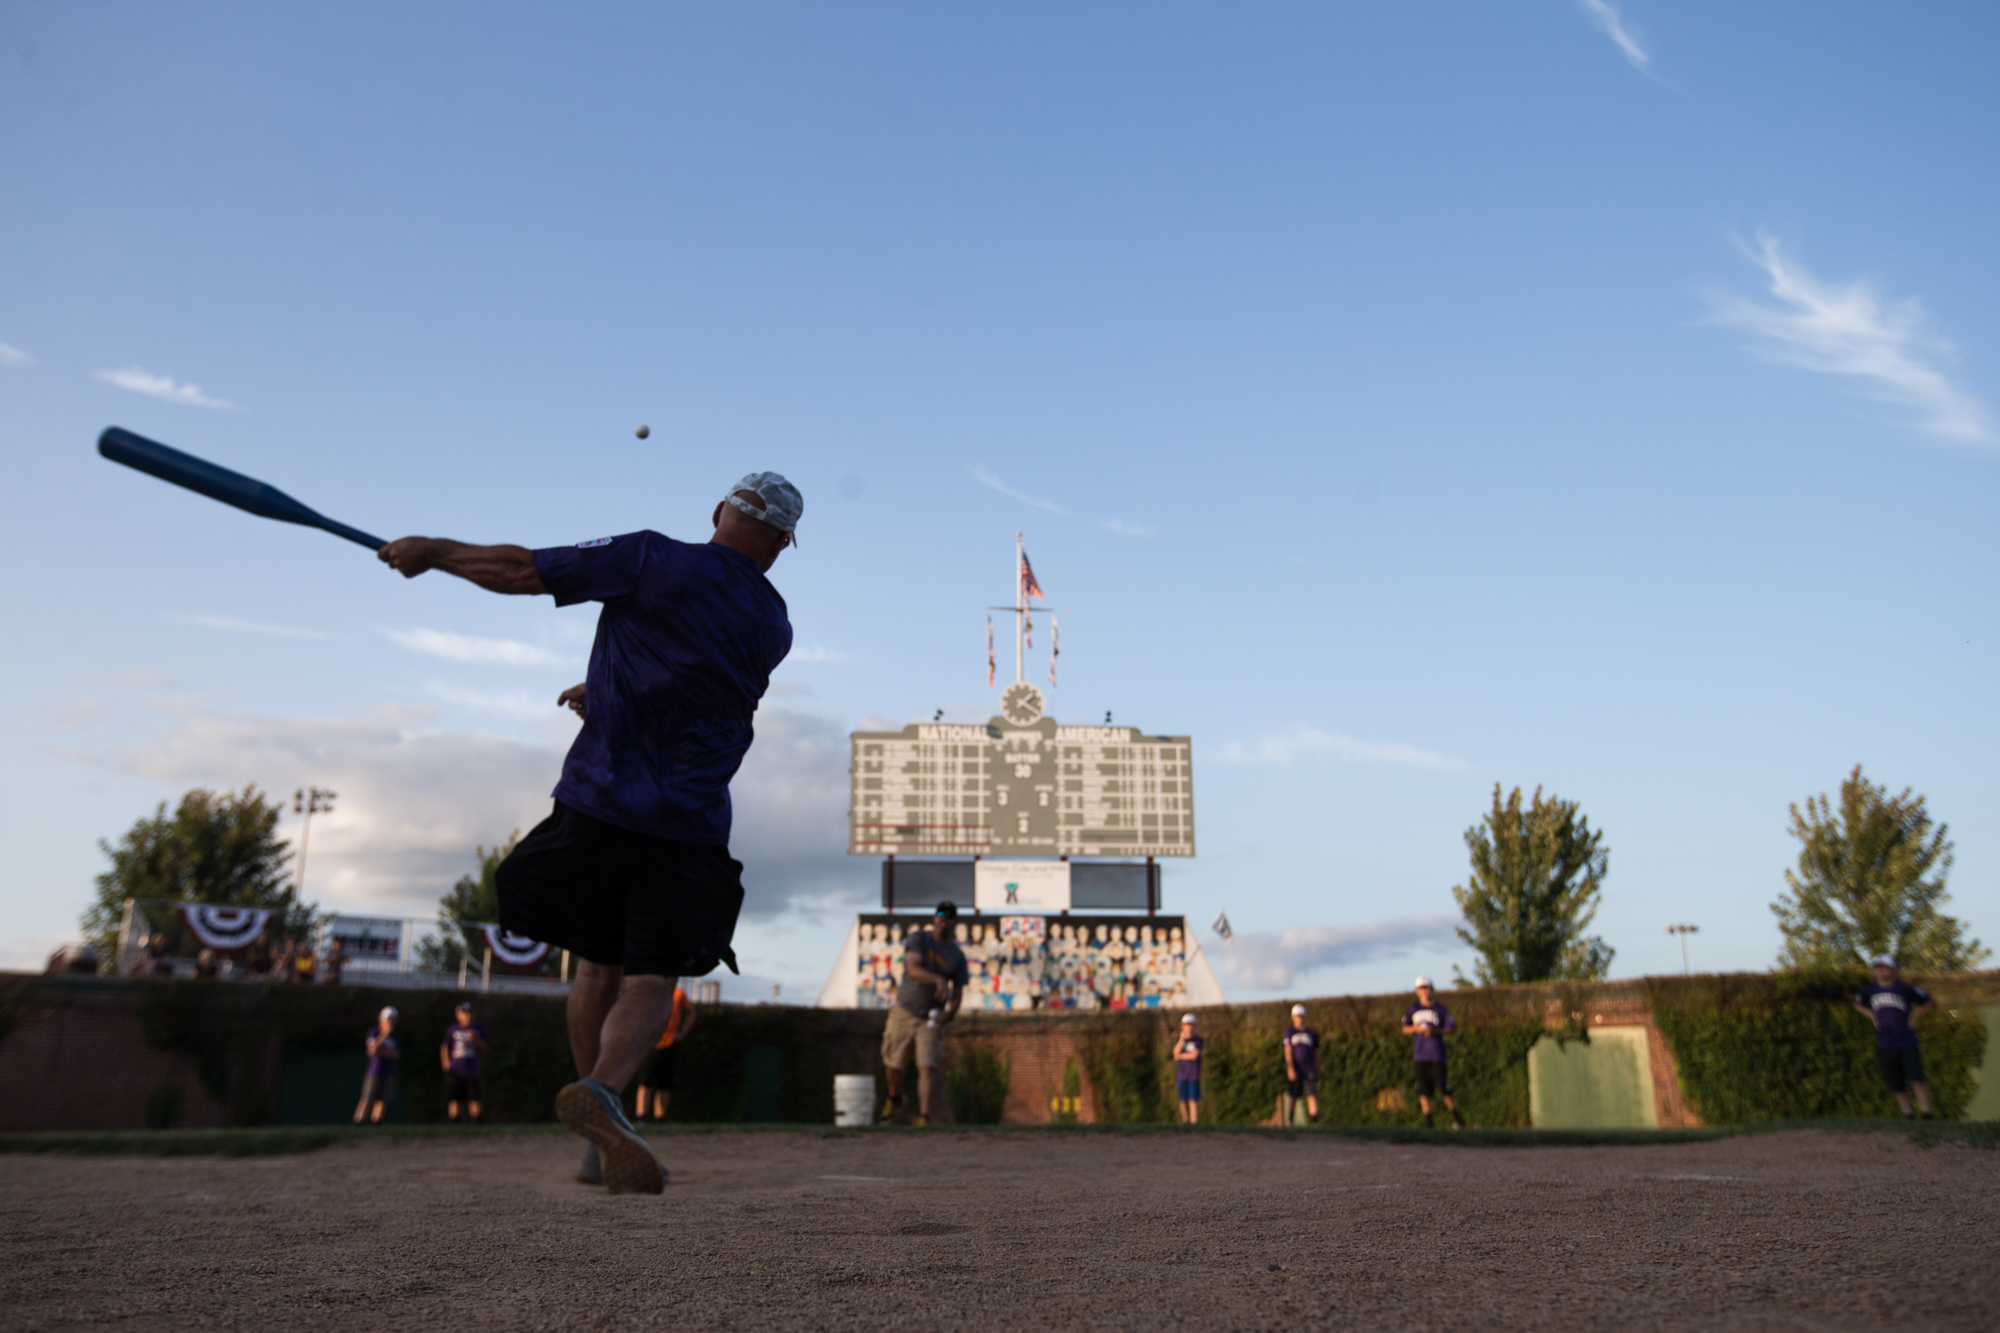 Rochelle coach Jim Gensler watches his hit during the kick-off home run derby event for the Illinois State Little League Championship hosted by Freeport Little League on Friday, July 27, 2018, at Little Cubs Field in Freeport. [SCOTT P. YATES/RRSTAR.COM & THE JOURNAL-STANDARD STAFF]